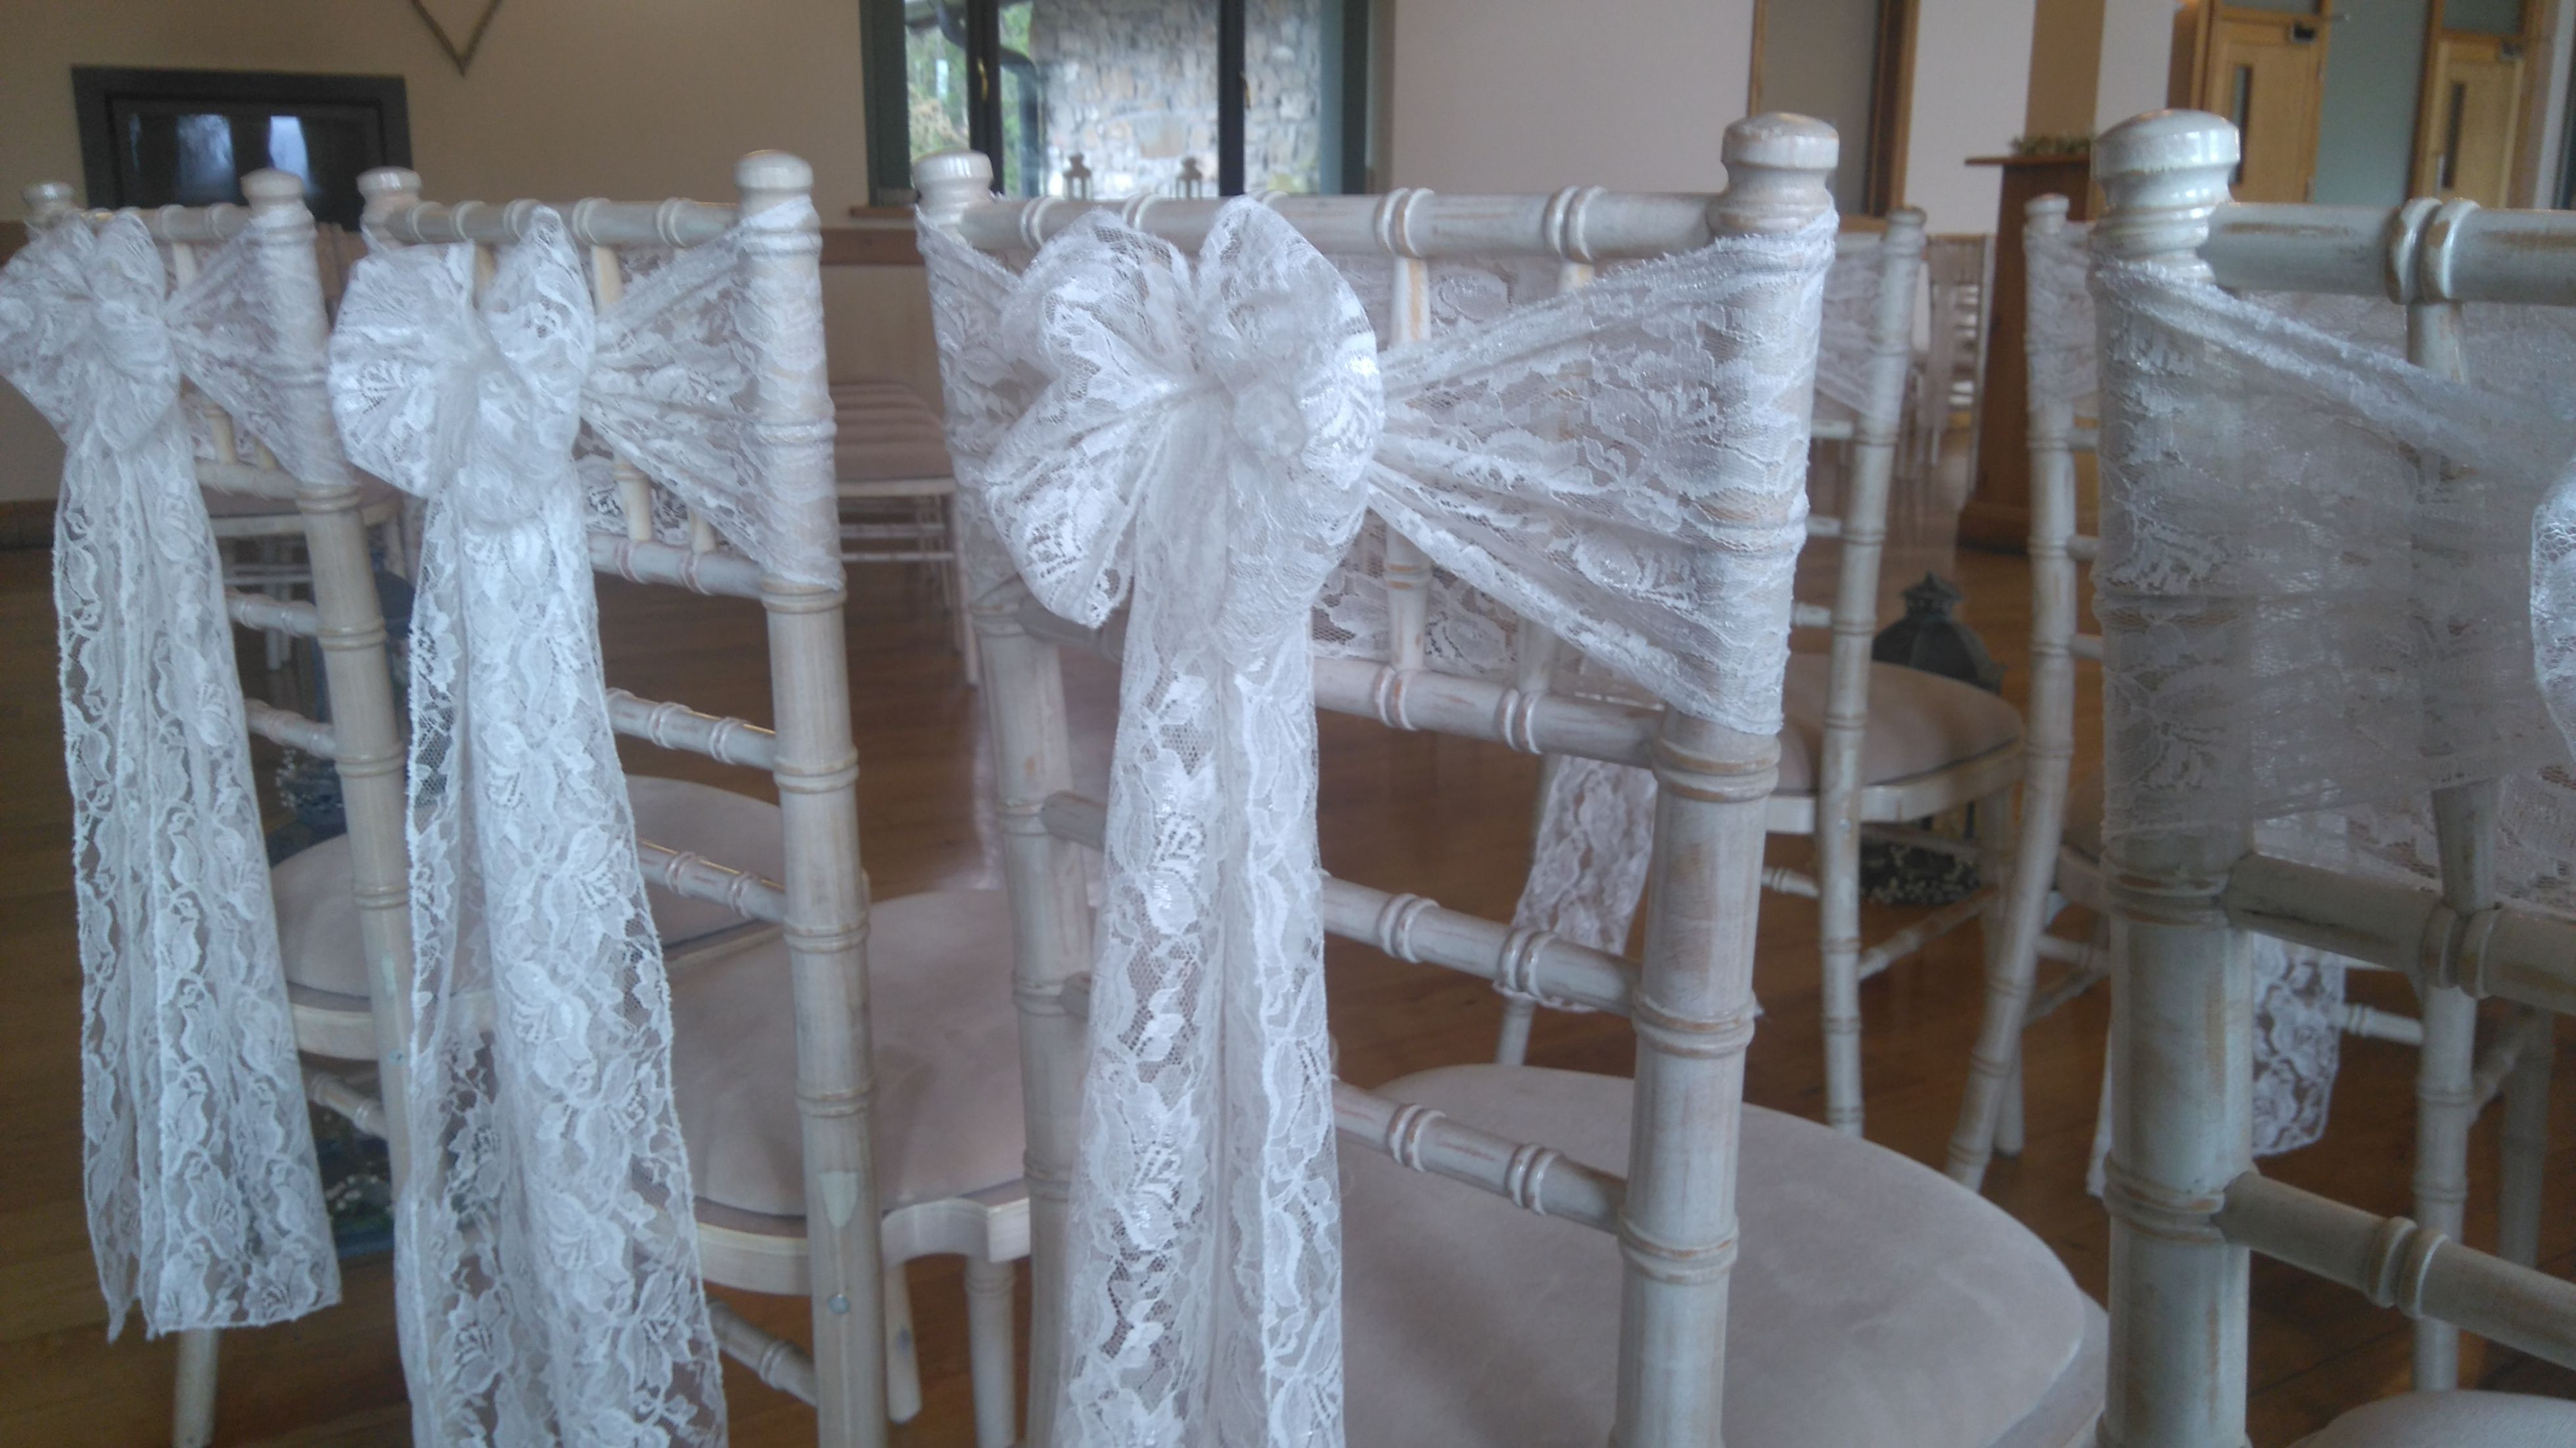 Lace sashes tied in a bow Canada lake Lodge Chiavari chair hire